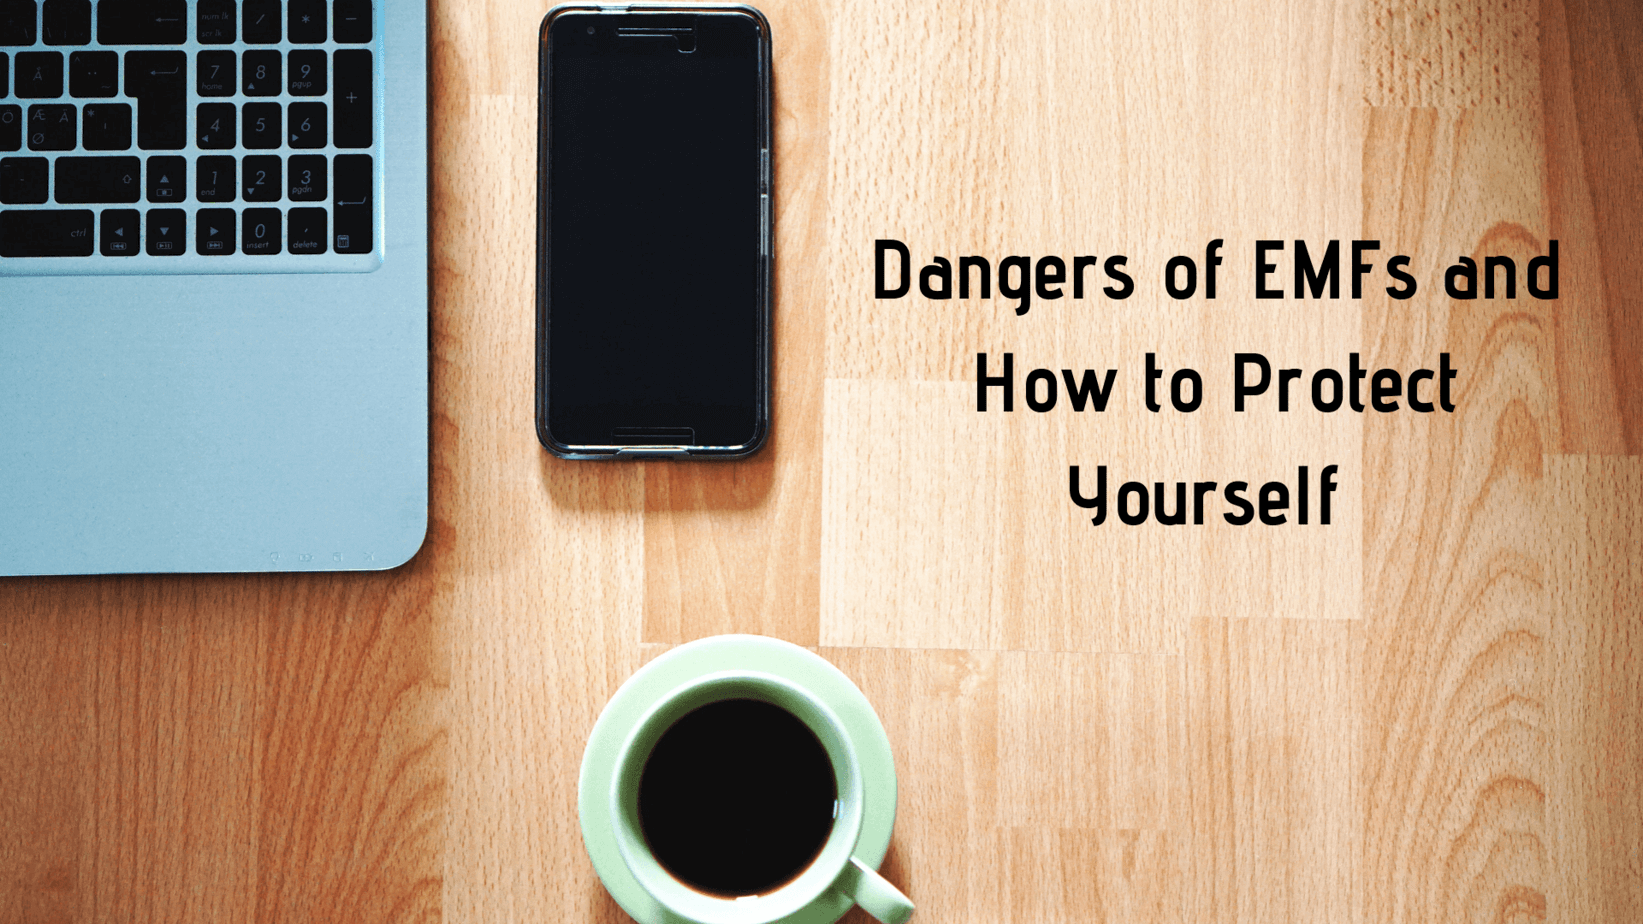 Dangers-of-EMFs-and-How-to-Protect-Yourself